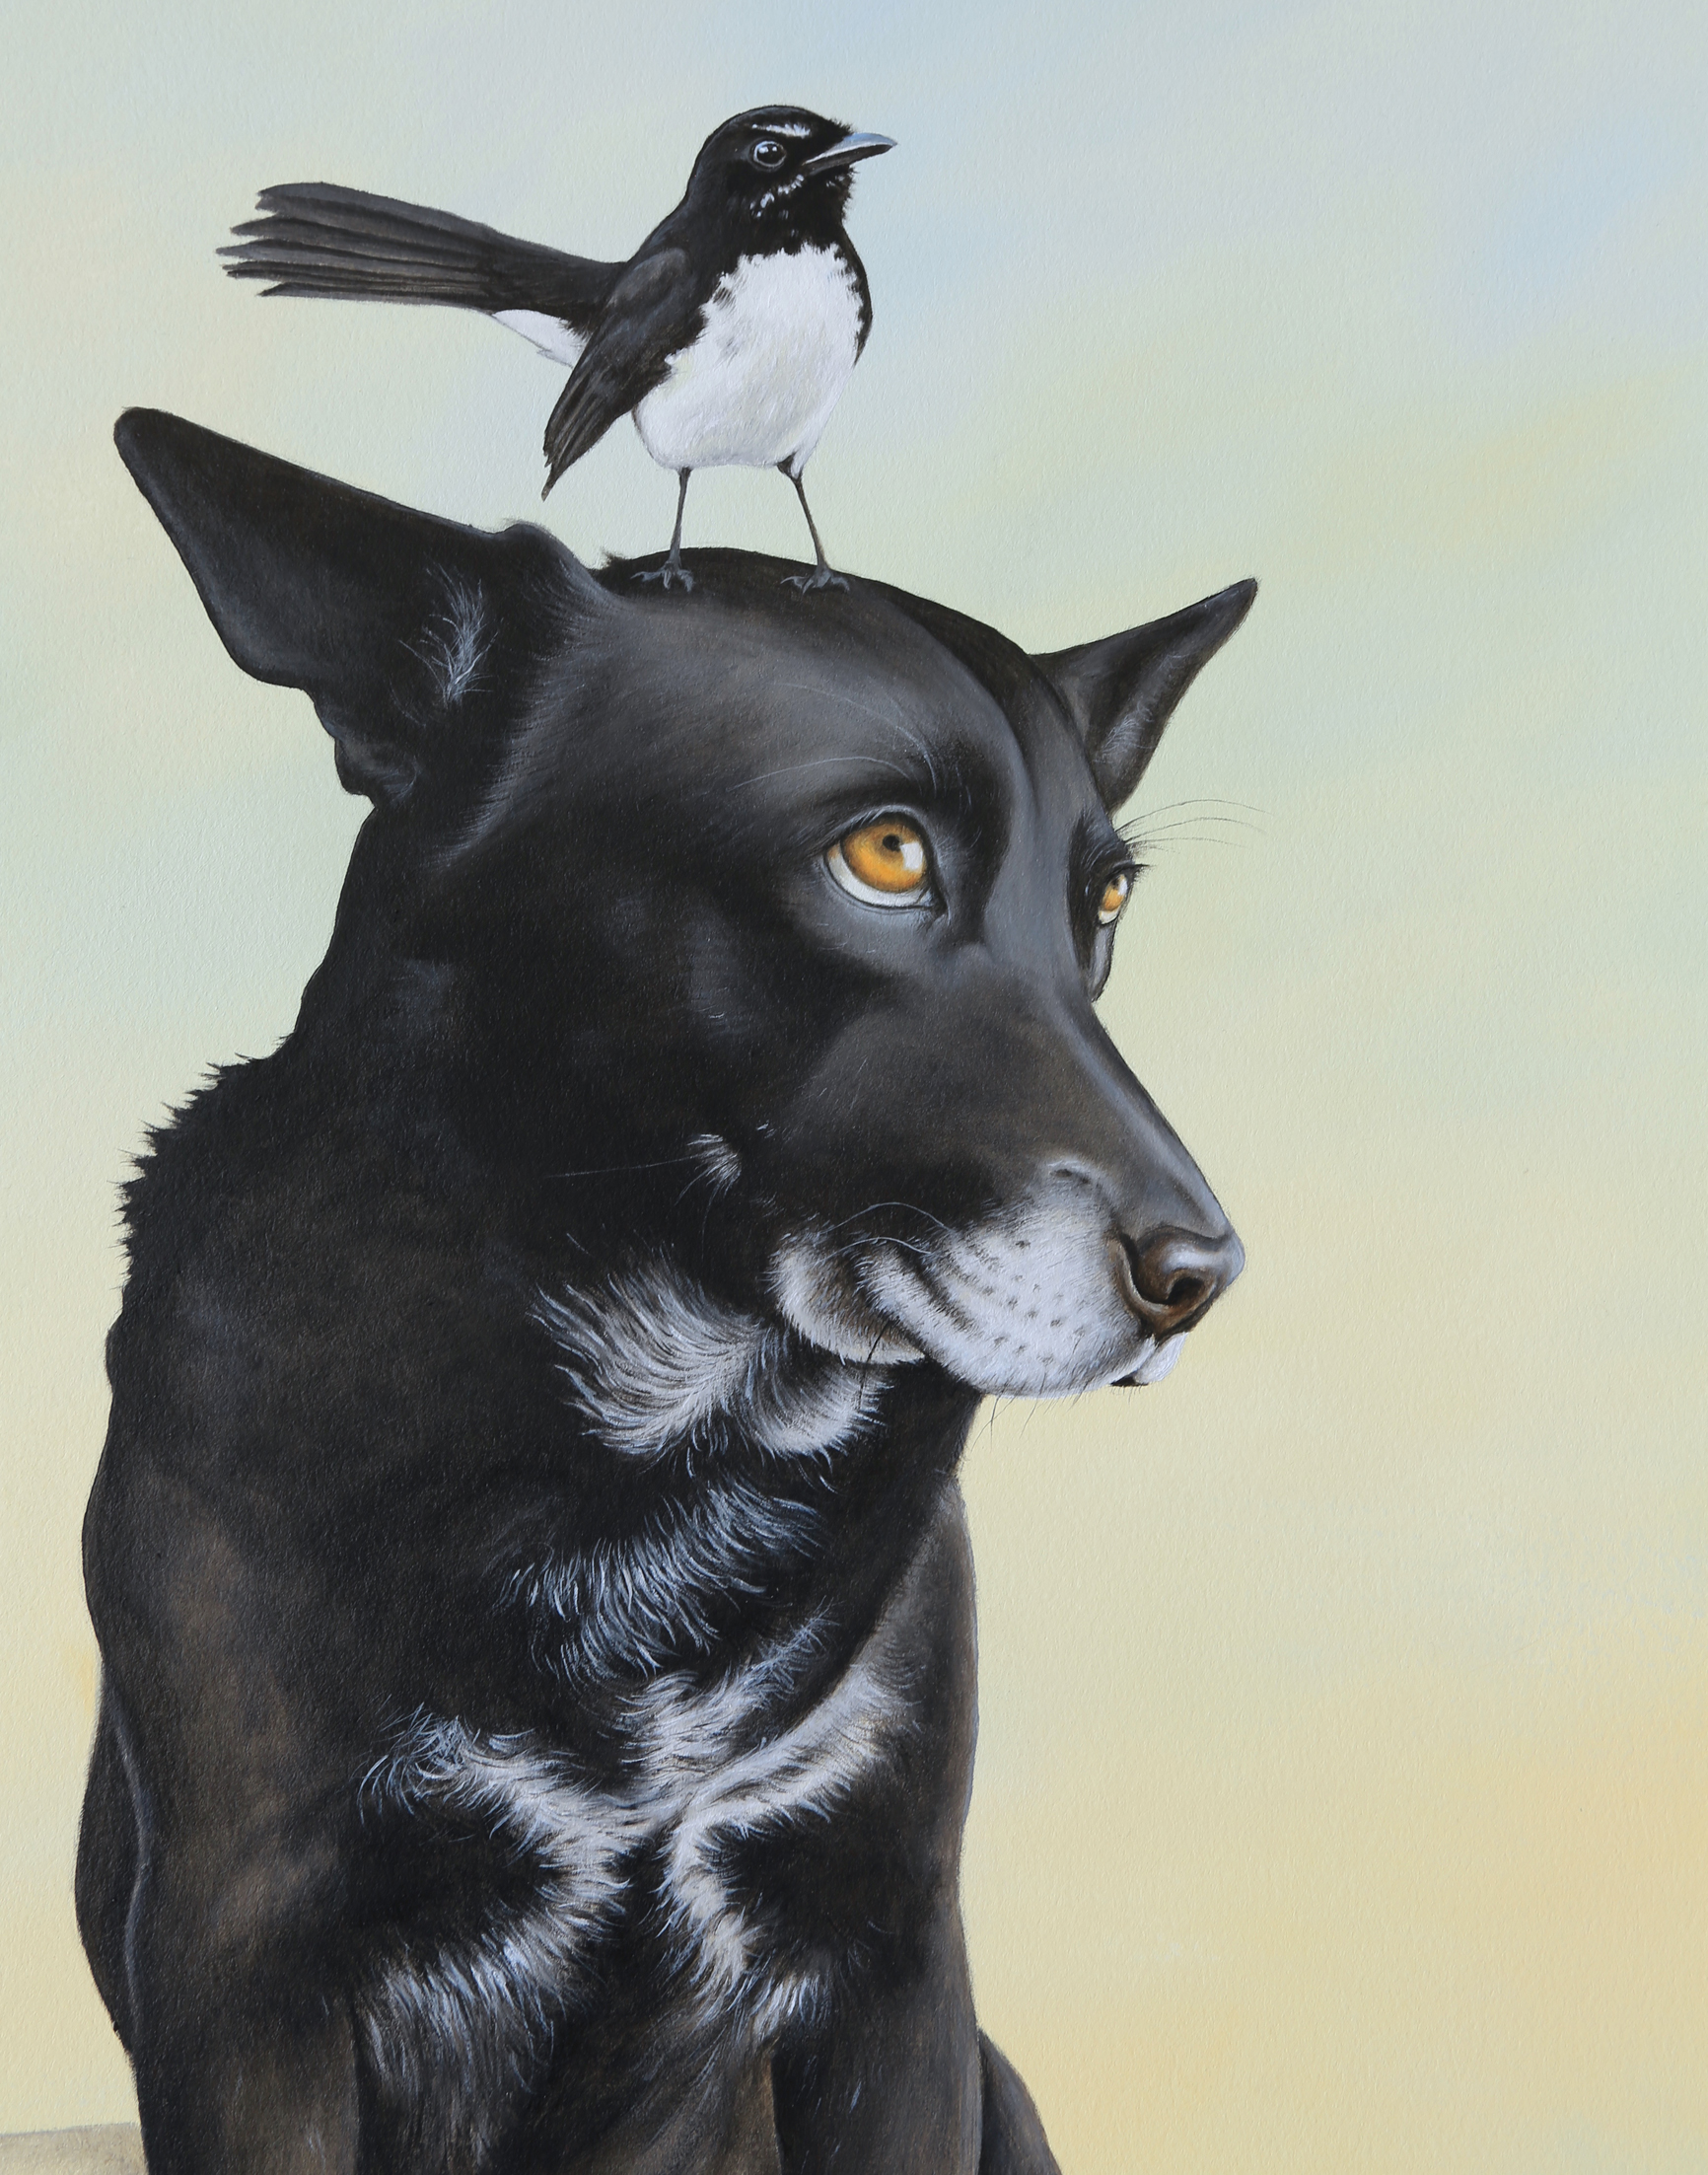 Rocket and the Willie Wagtail